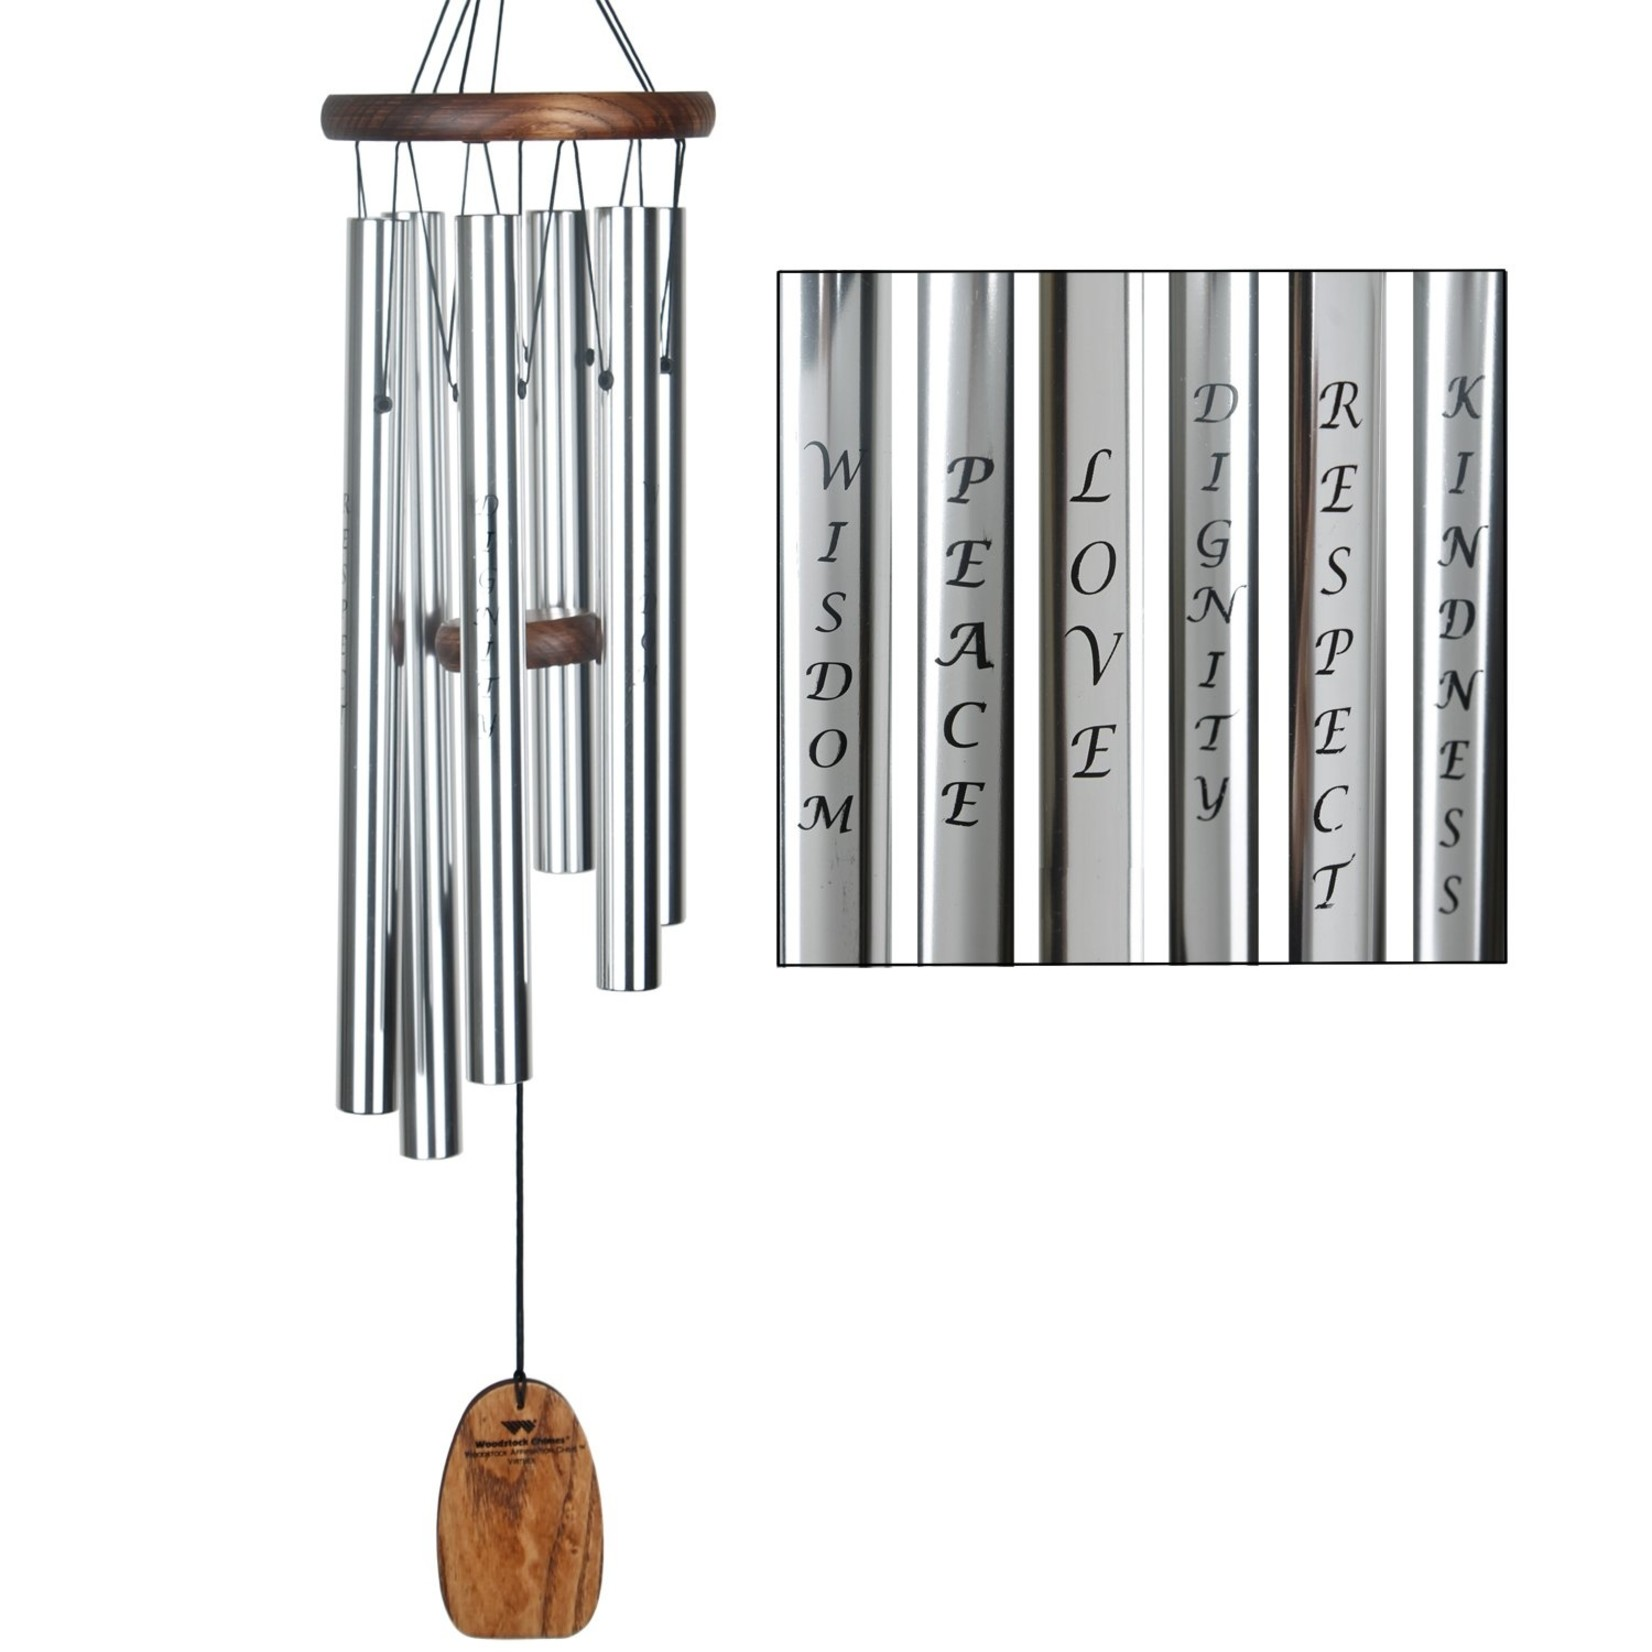 Woodstock Chimes Virtues Affirmation Chime